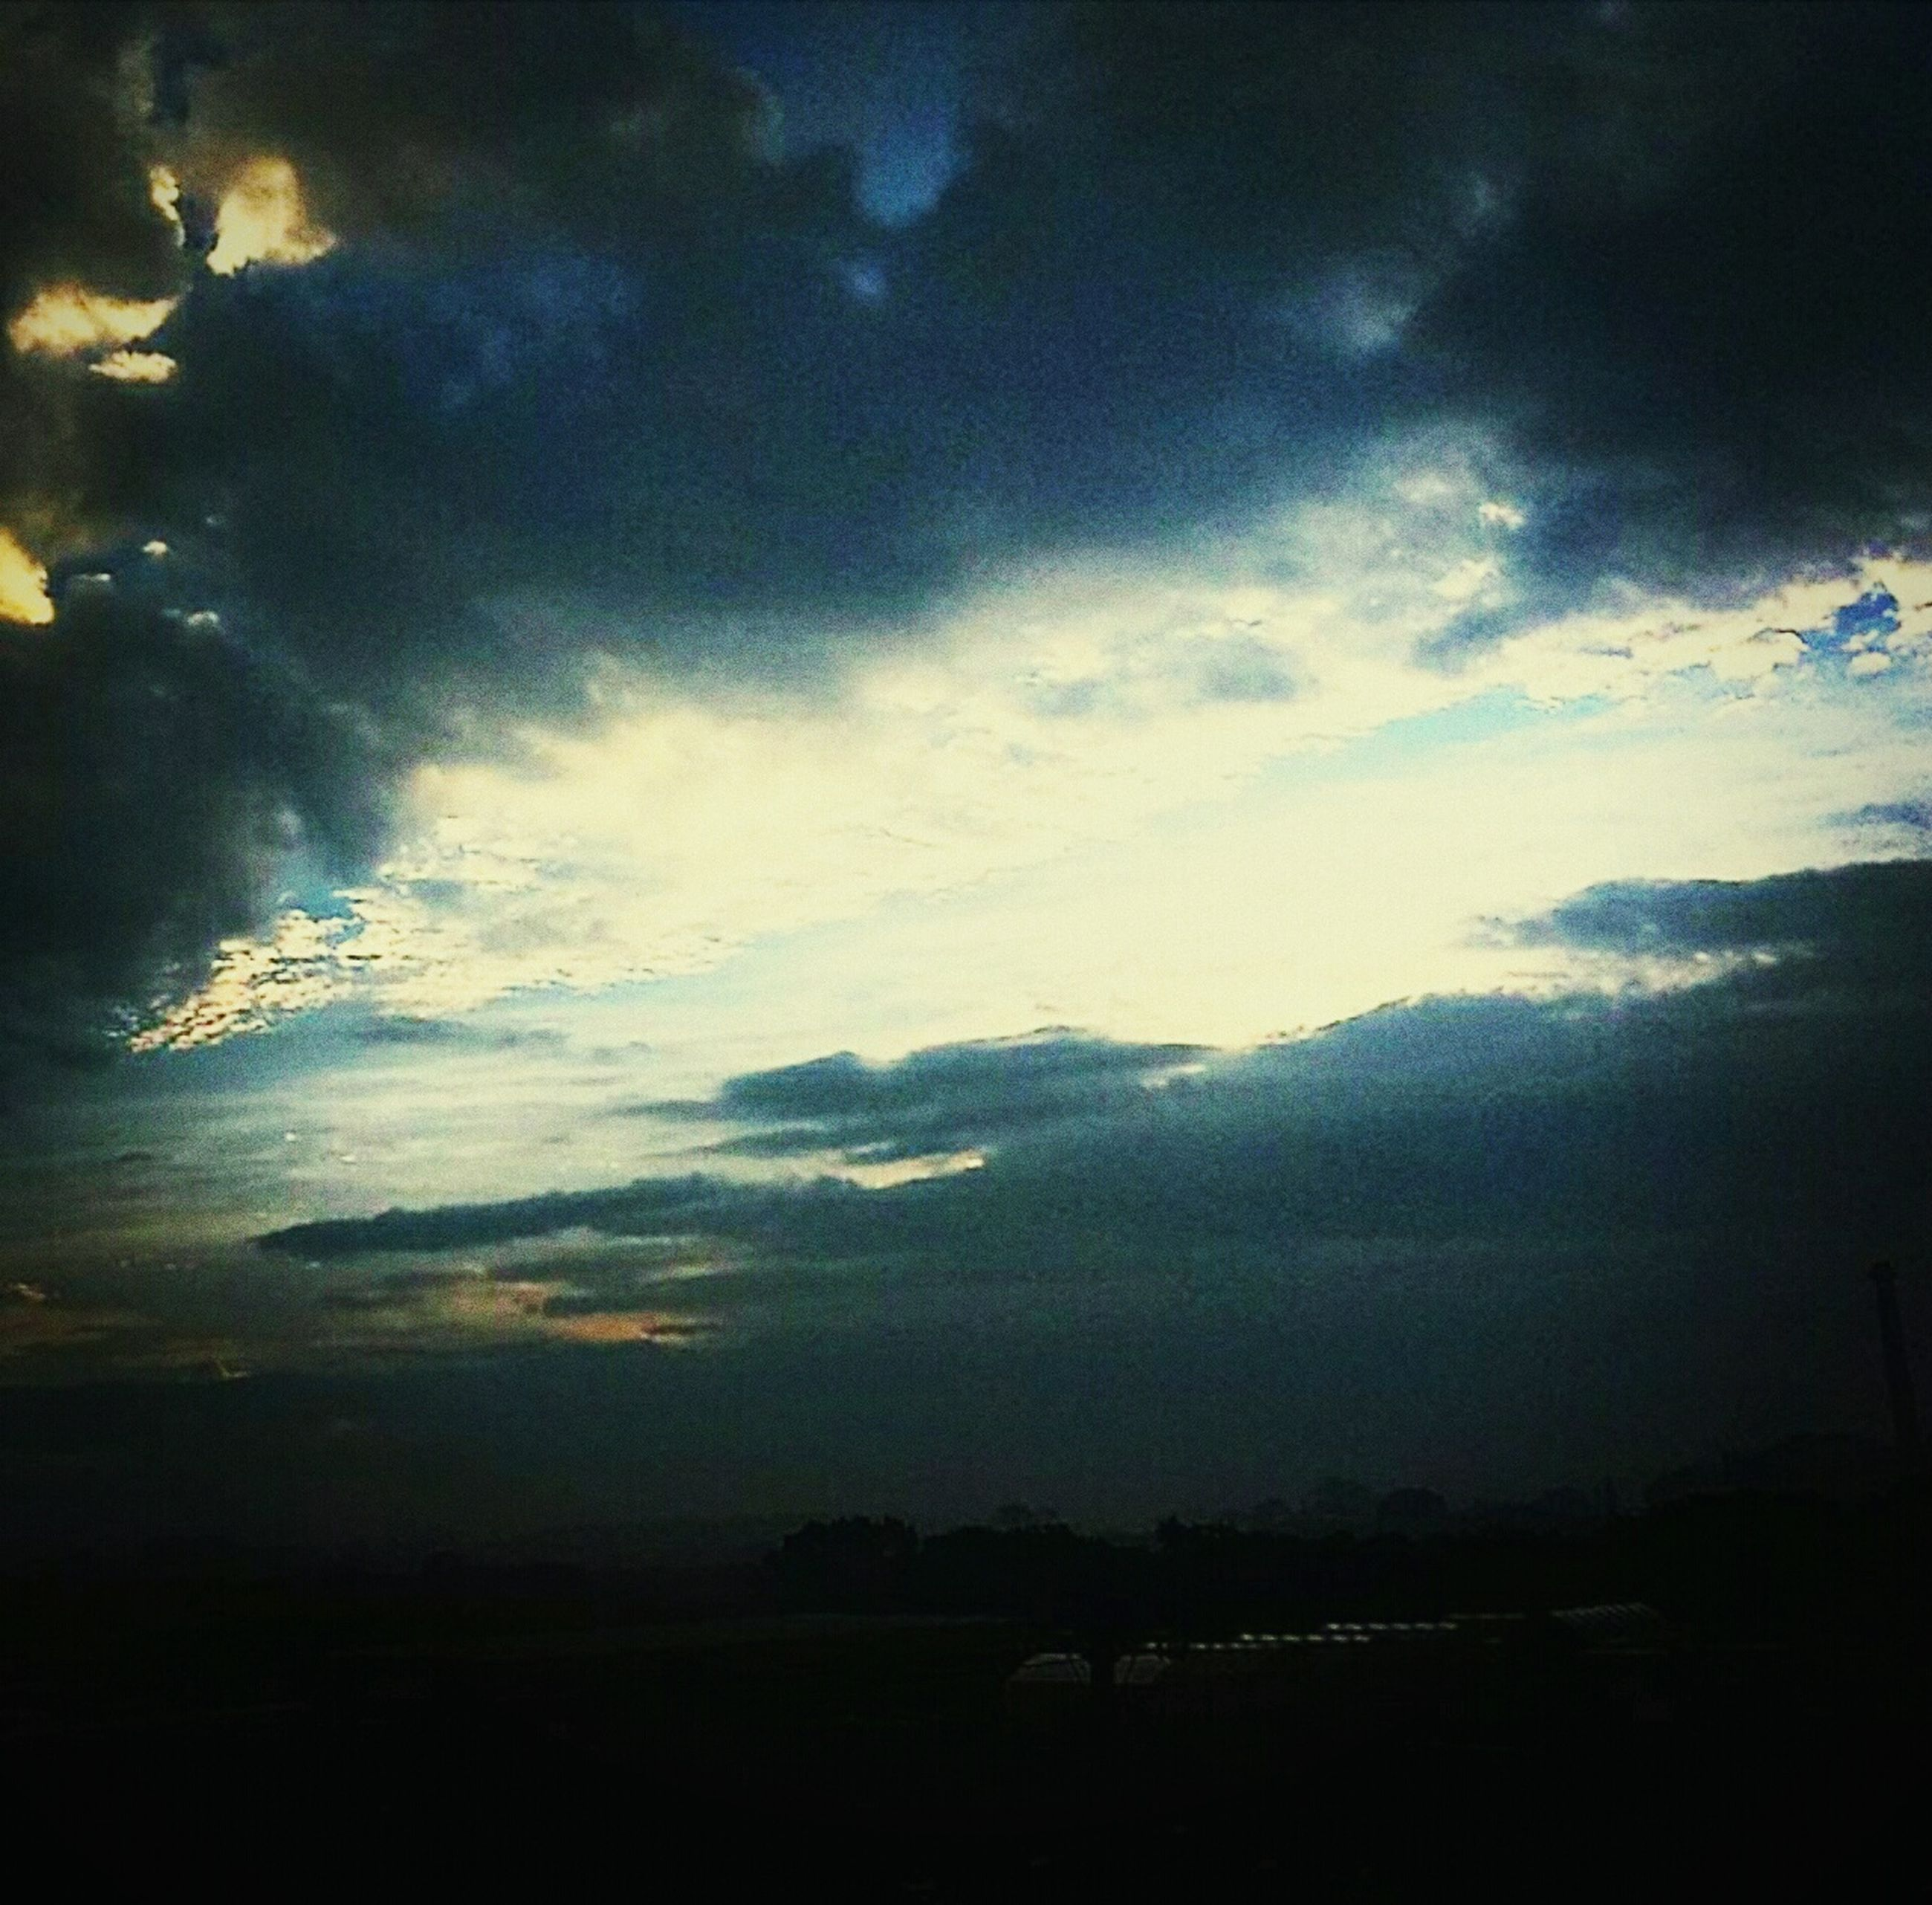 sky, cloud - sky, tranquility, tranquil scene, scenics, silhouette, beauty in nature, cloudy, nature, landscape, dusk, sunset, cloud, weather, idyllic, dark, outdoors, no people, overcast, dramatic sky